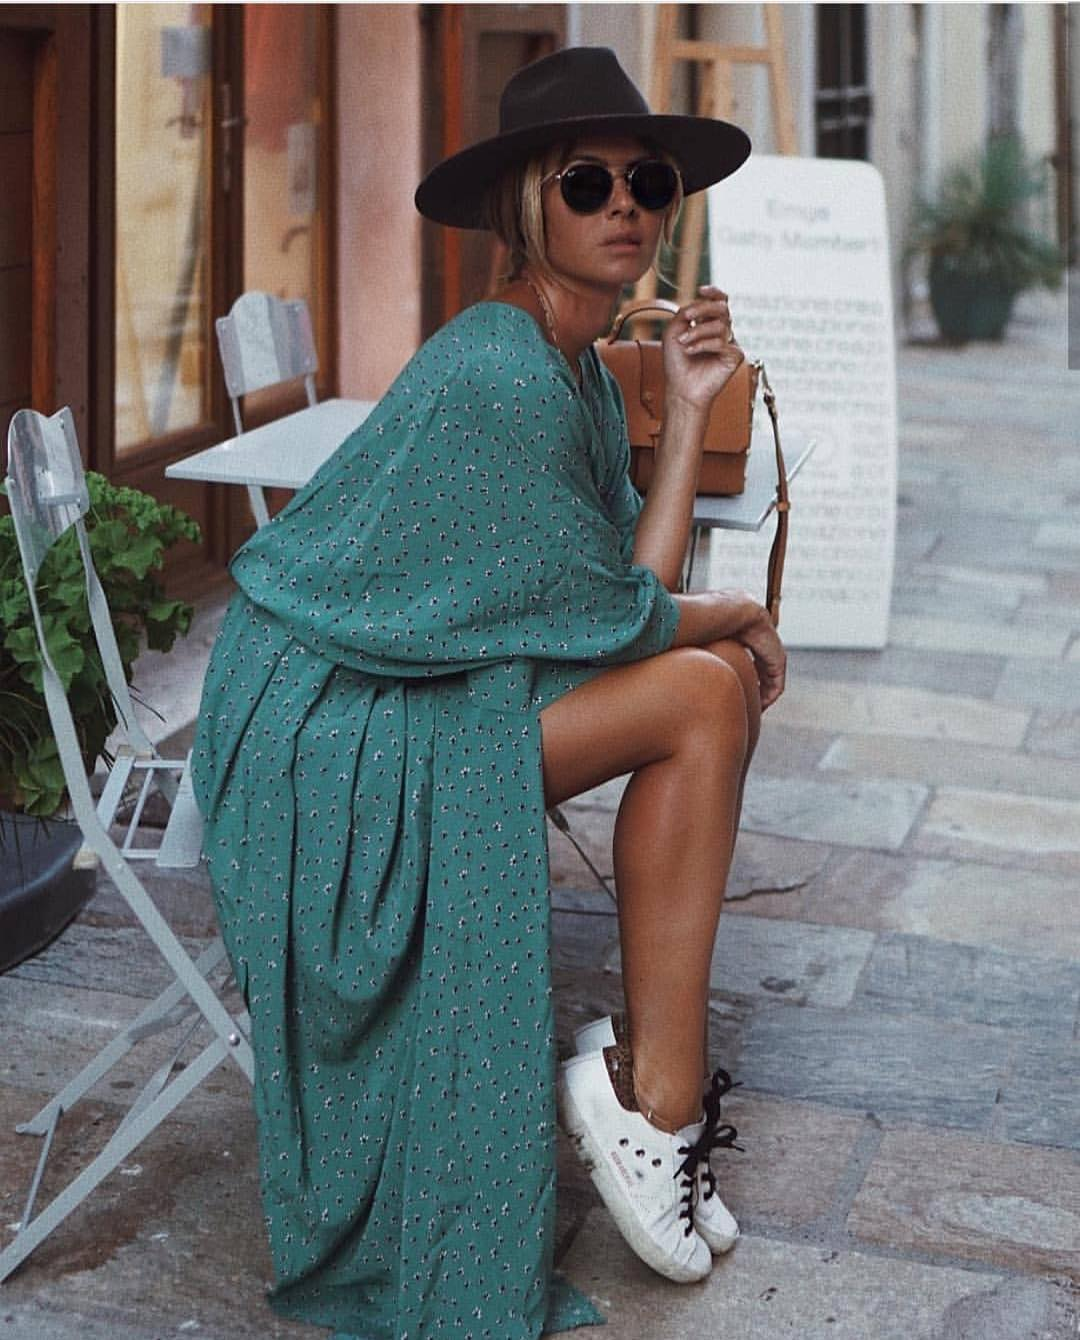 Turquoise Green Maxi Dress With White Sneakers For Summer Trips 2019